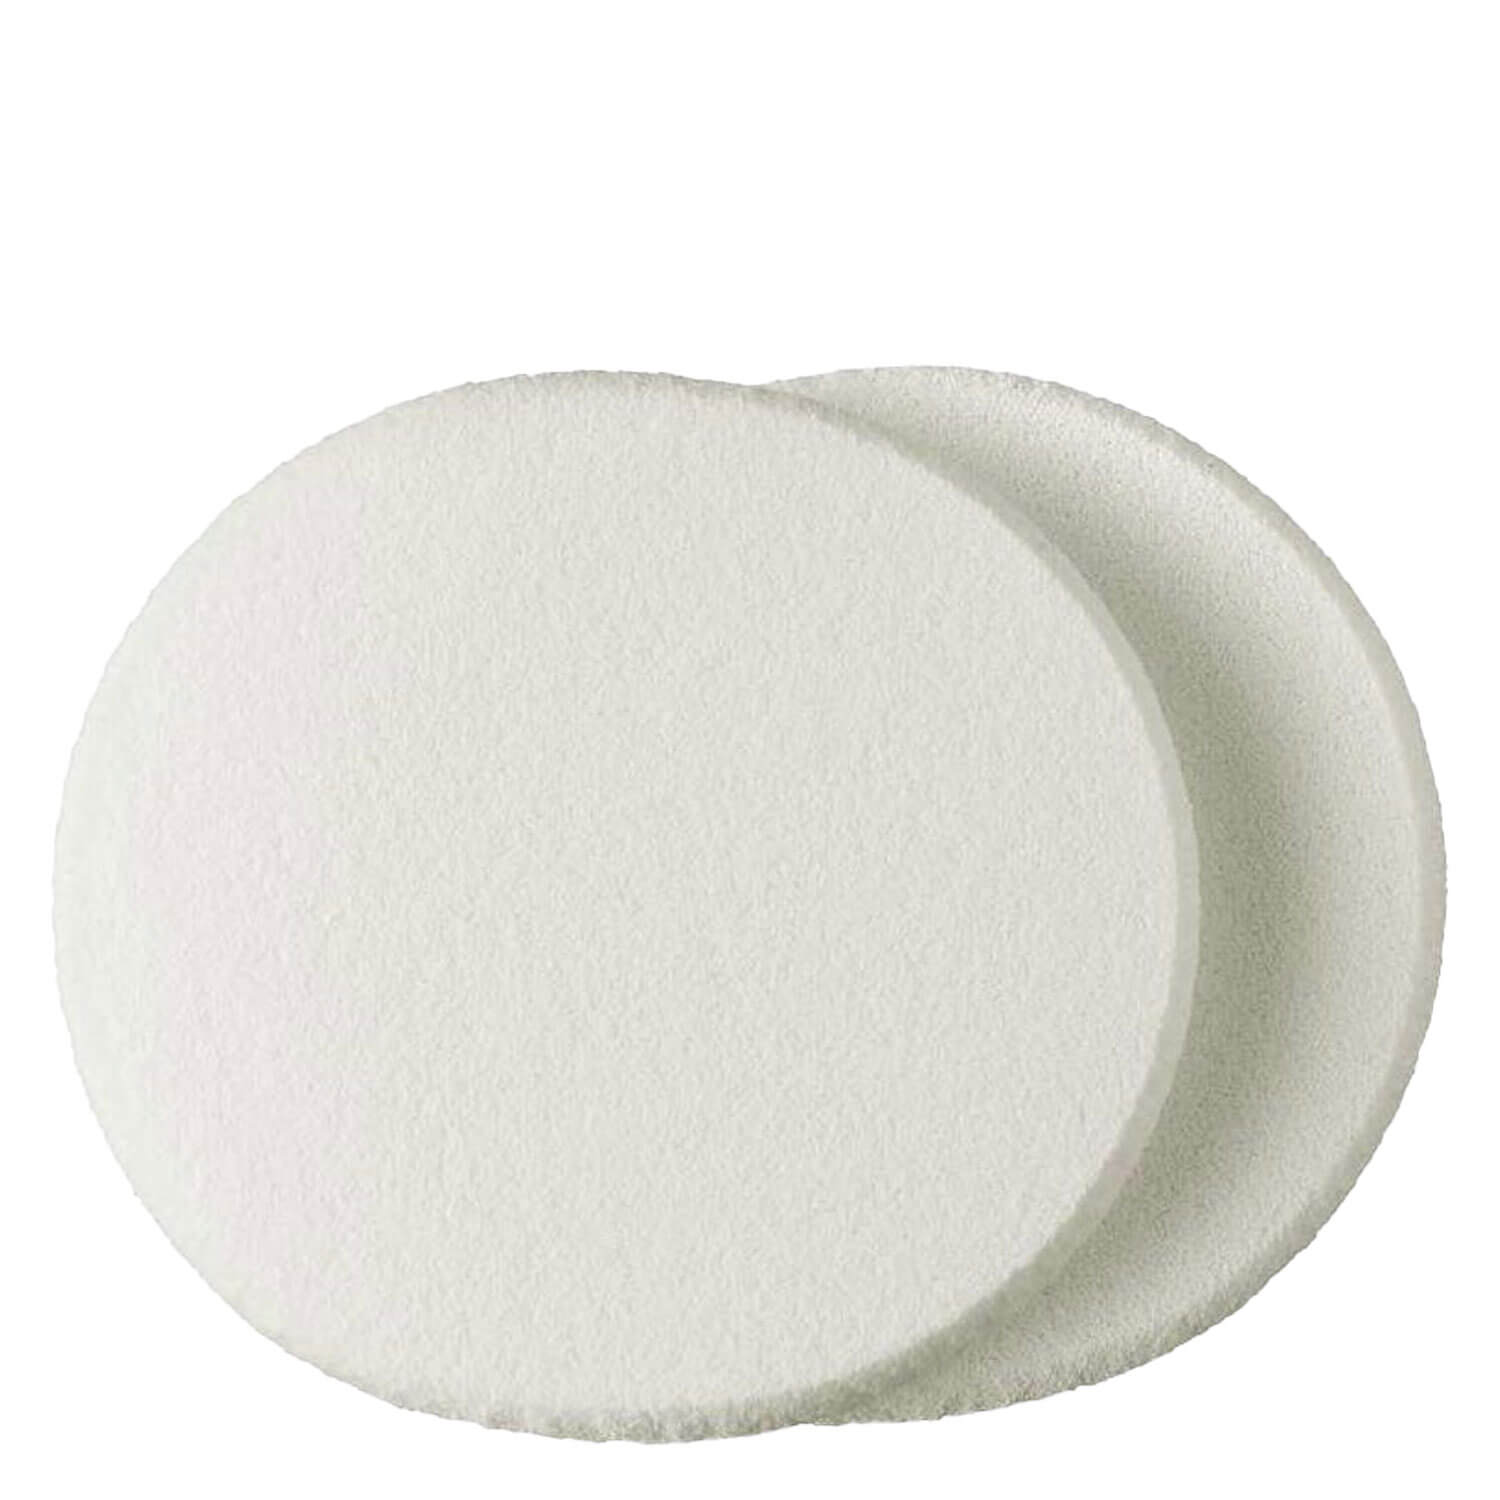 Artdeco Tools - Make-up Sponge Round